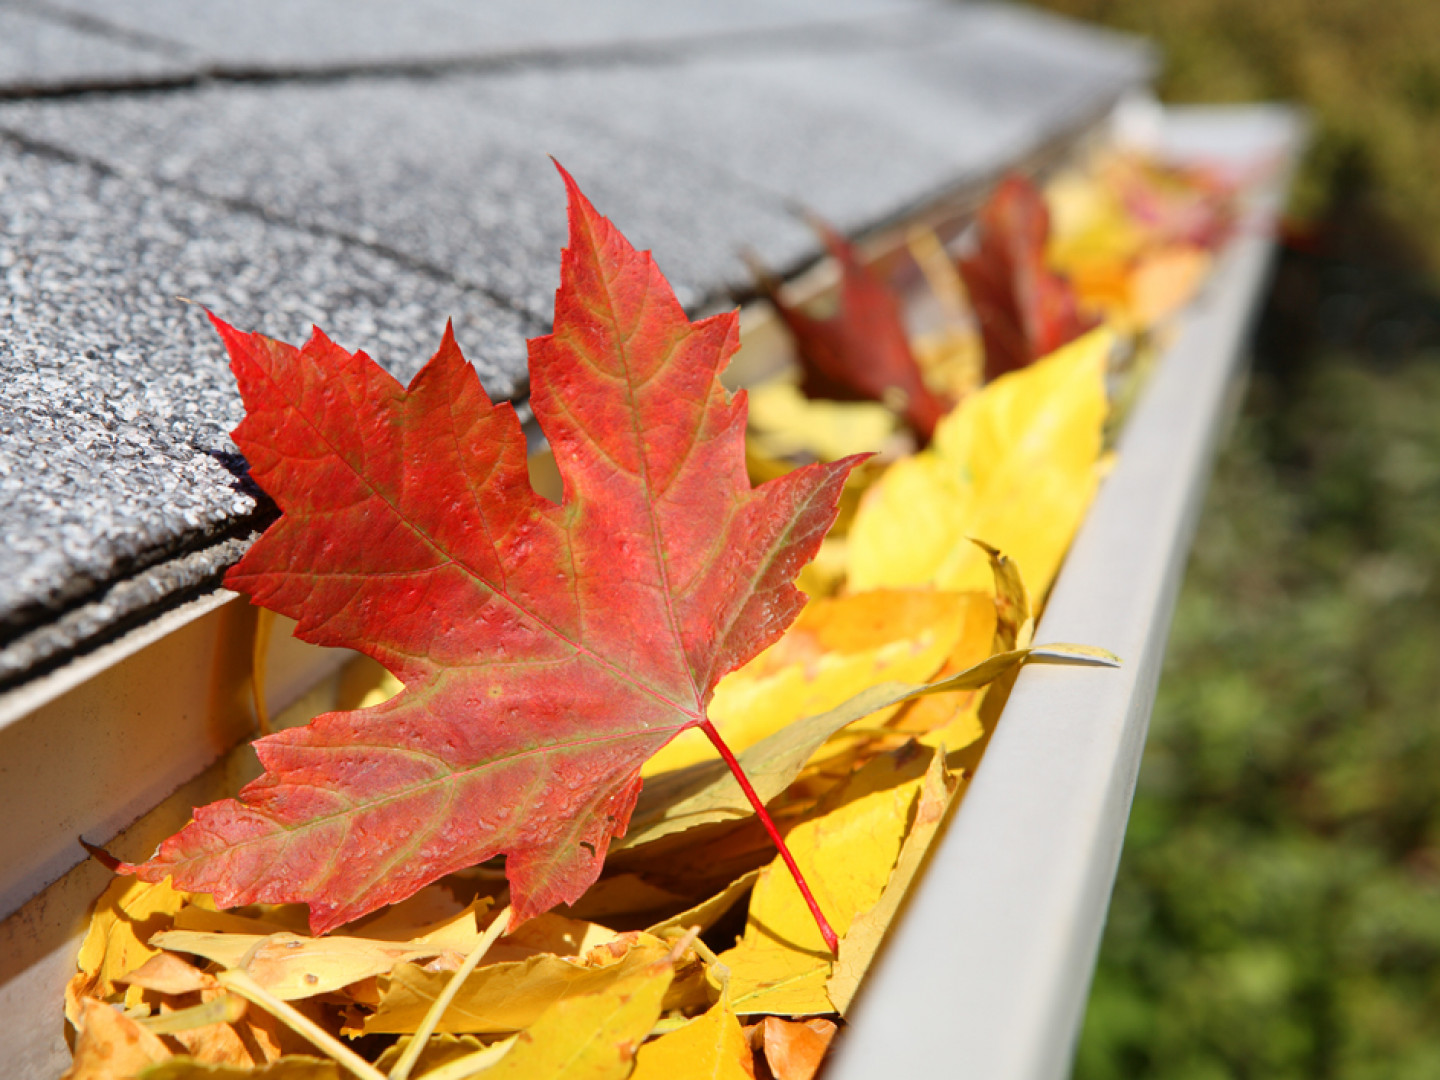 gutter cleaning services in Creve Coeur, Missouri